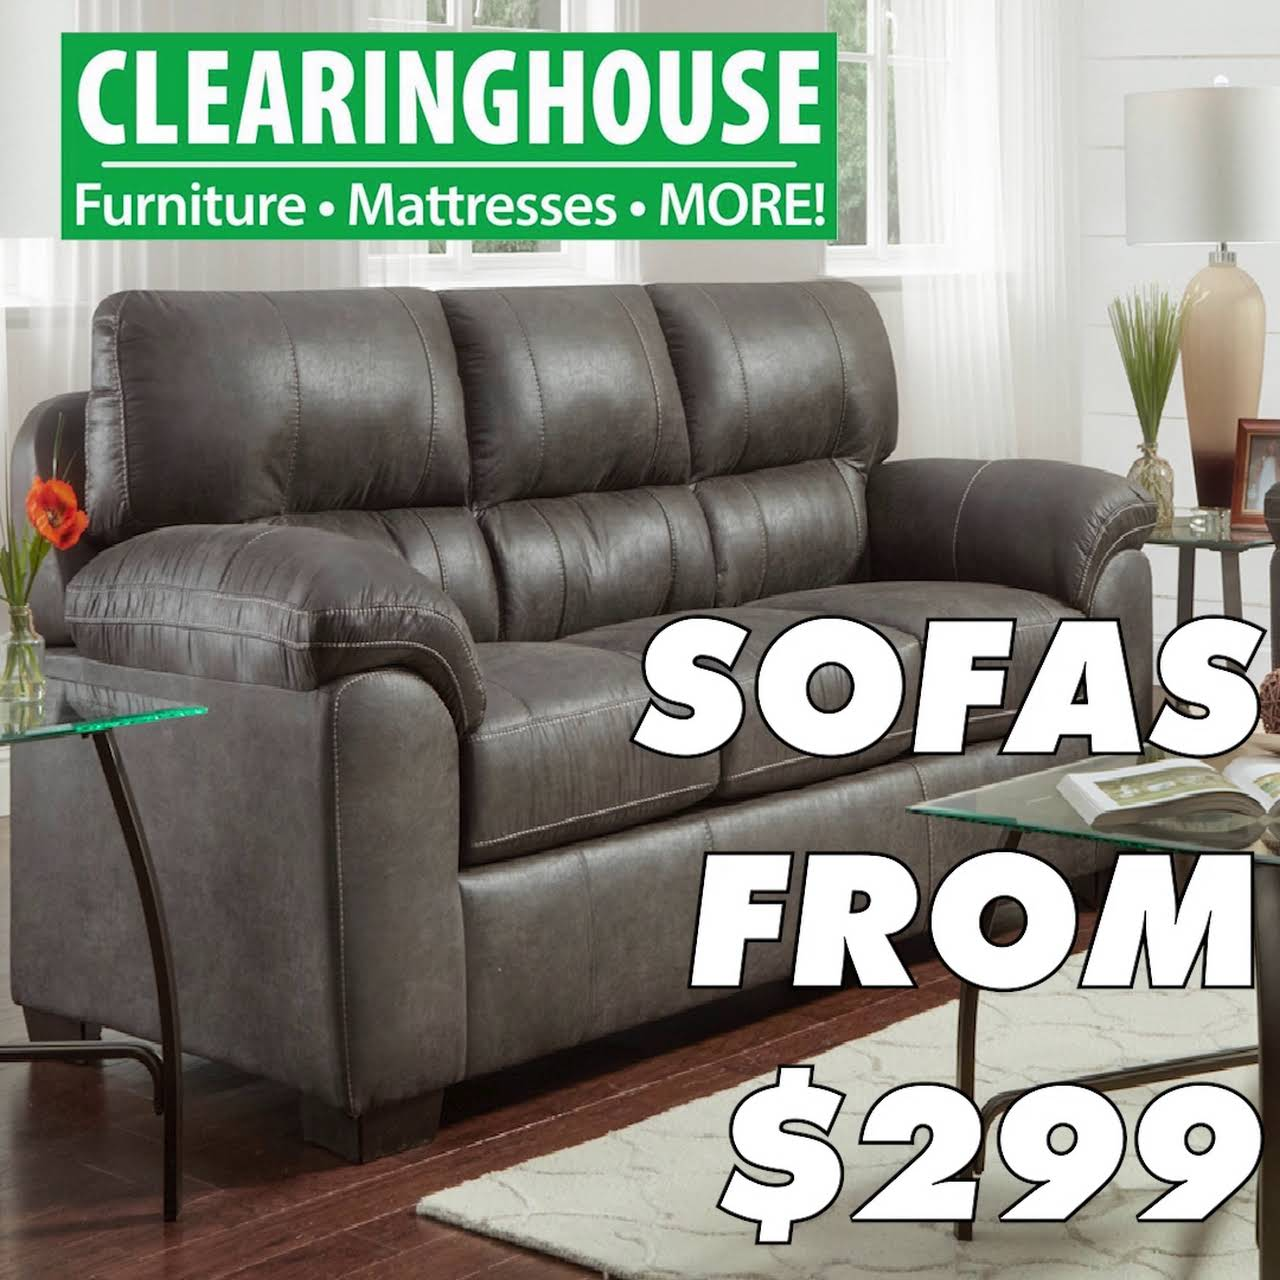 Clearinghouse Furniture Furniture Store In Stone Mountain